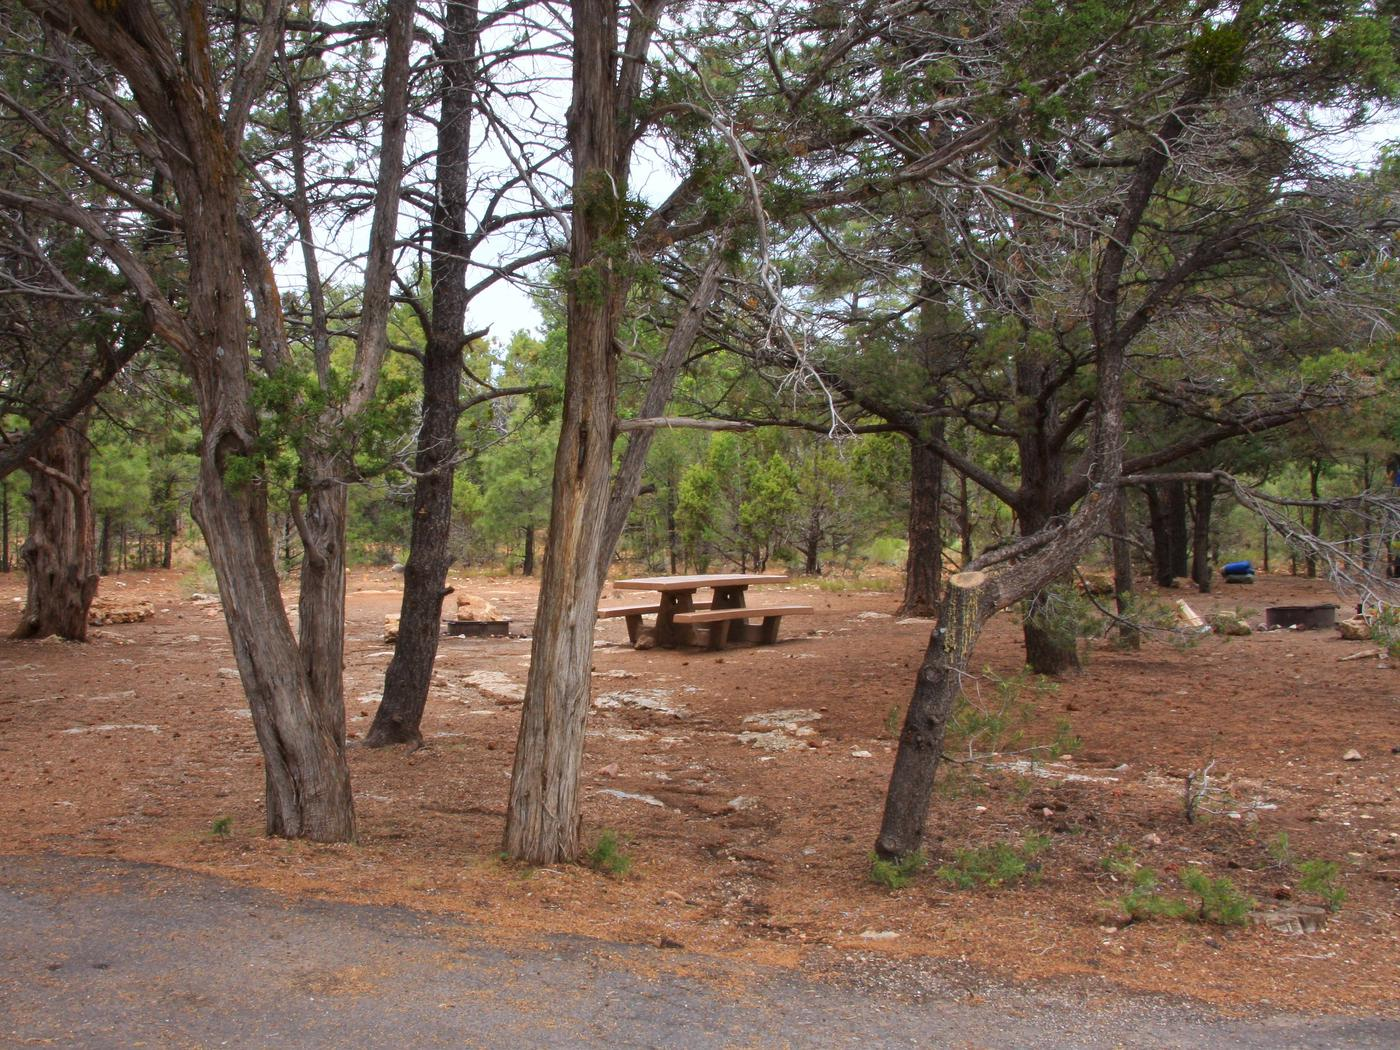 Picnic table, fire pit, and parking spot, Mather CampgroundPicnic table, fire pit, and parking spot for Pine Loop 277, Mather Campground